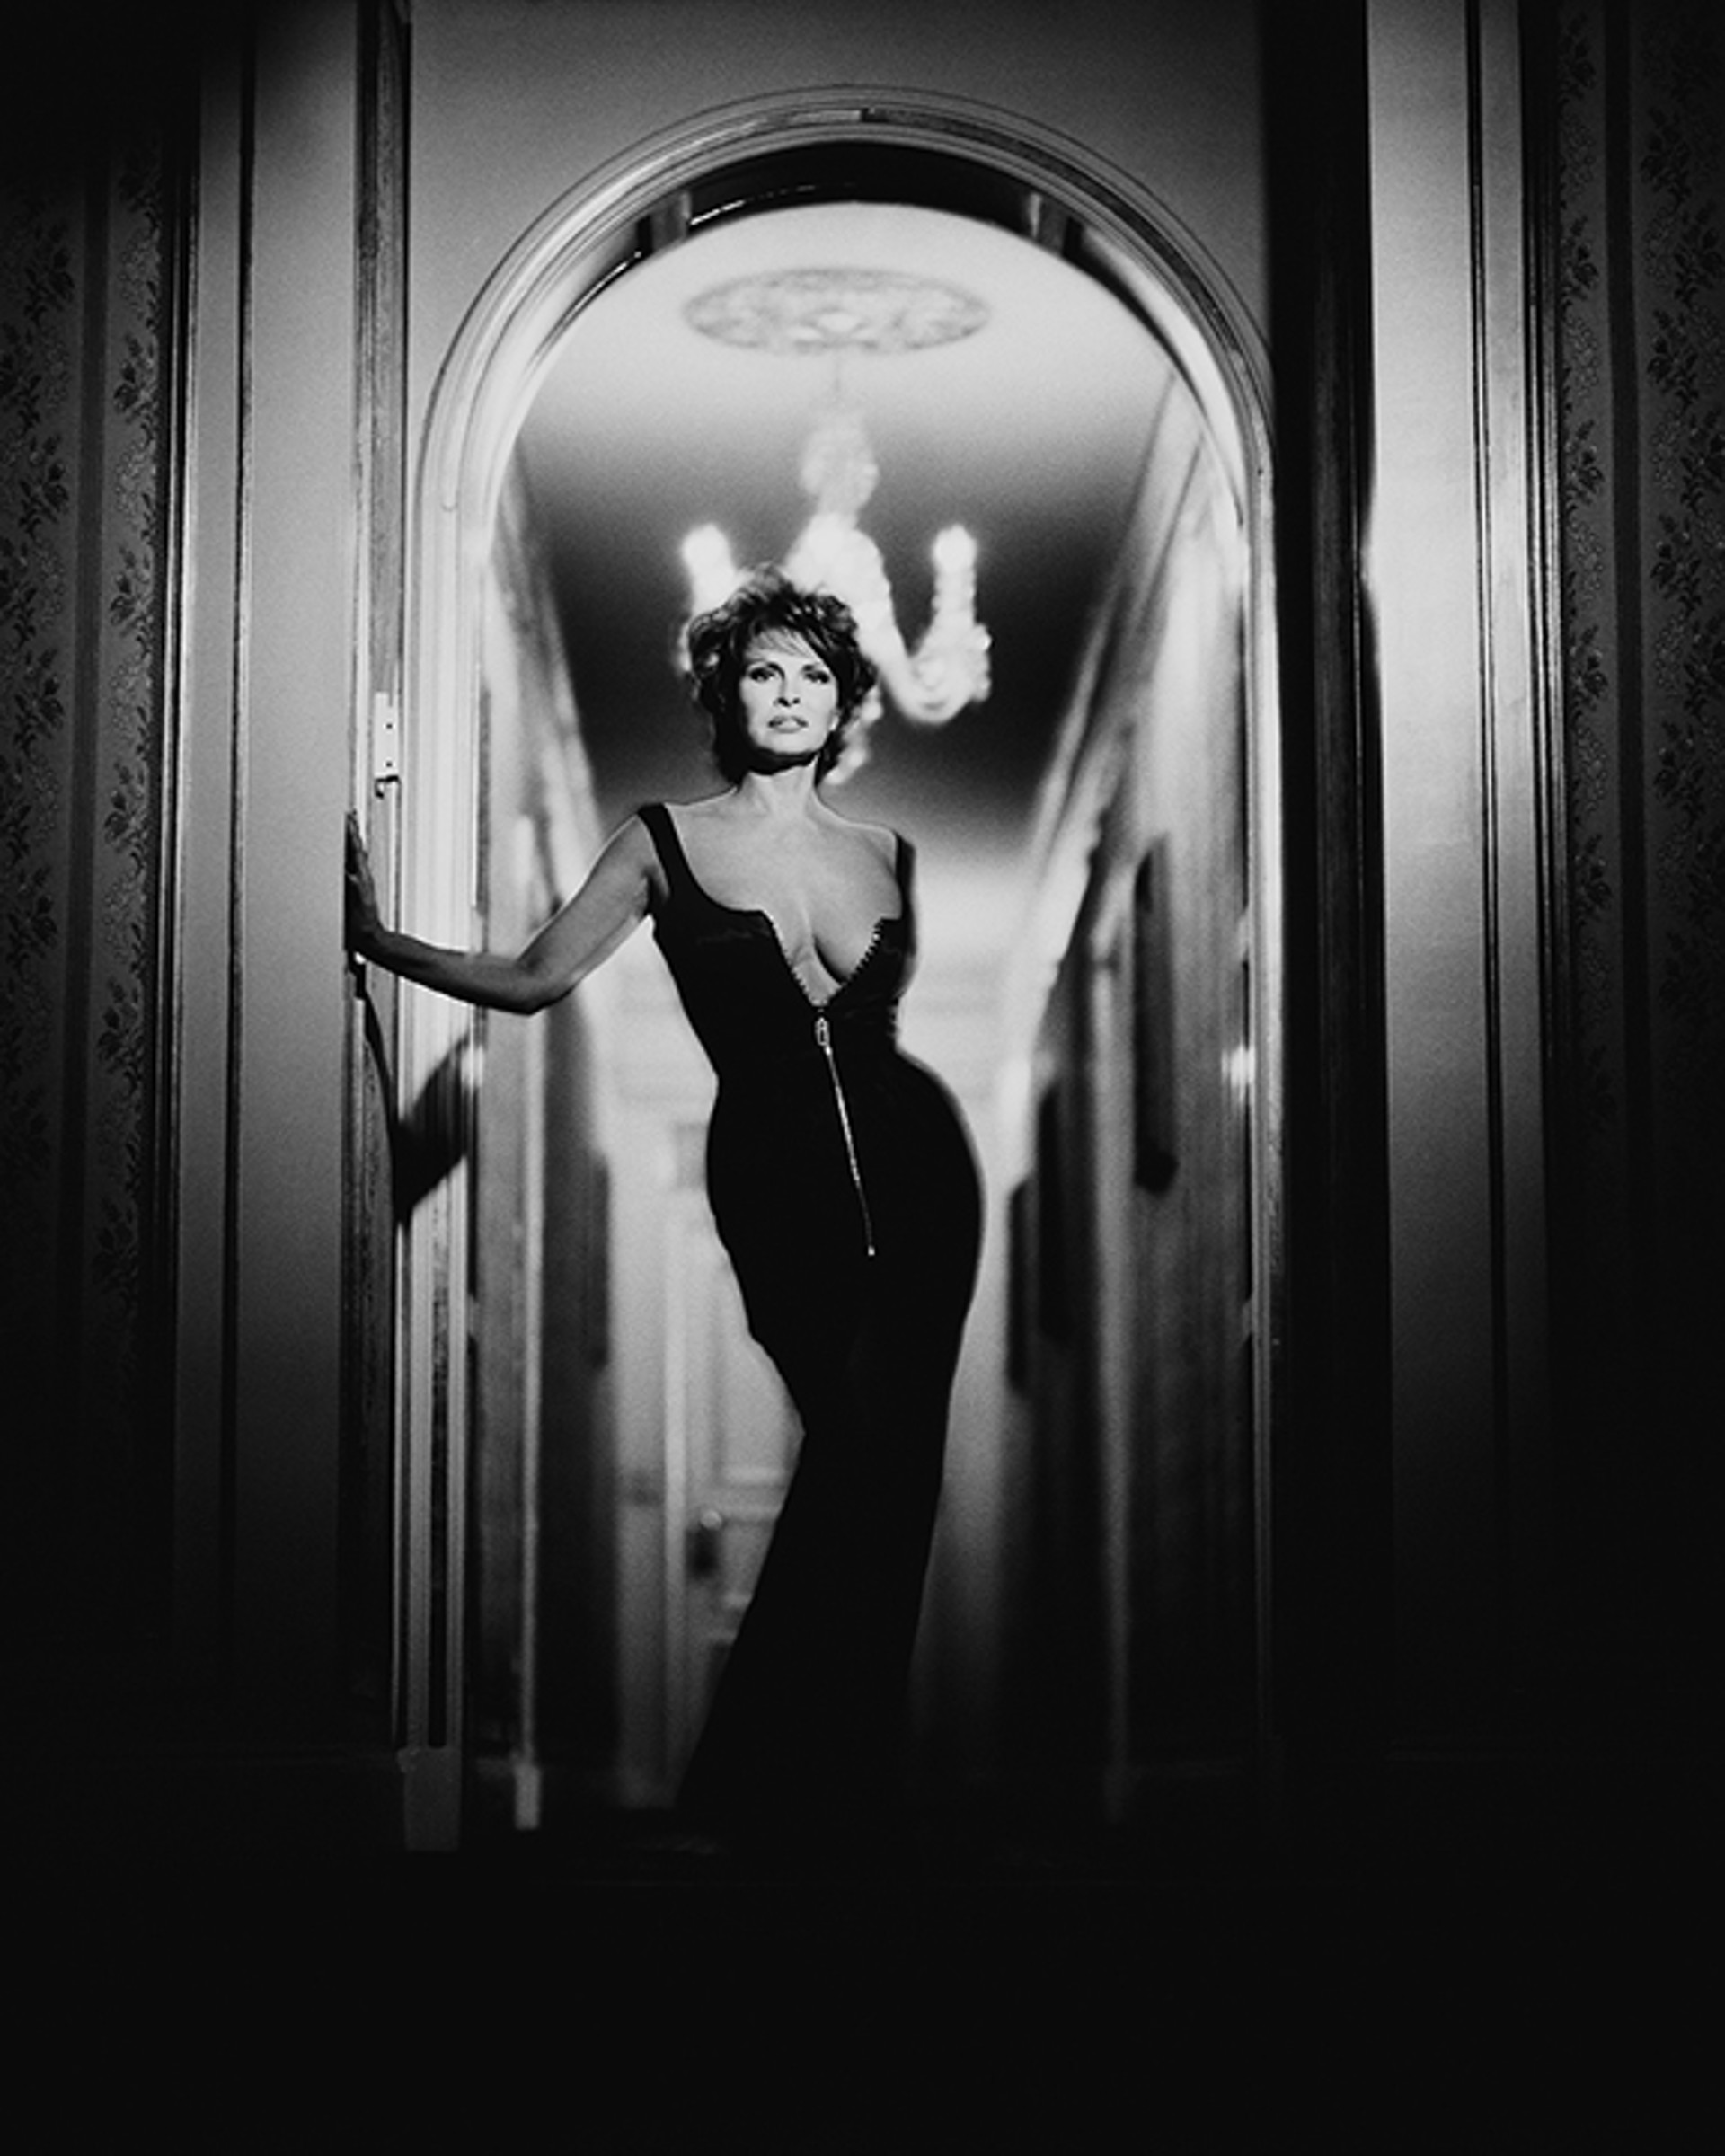 96017 Raquel Welch Doorway BW by Timothy White